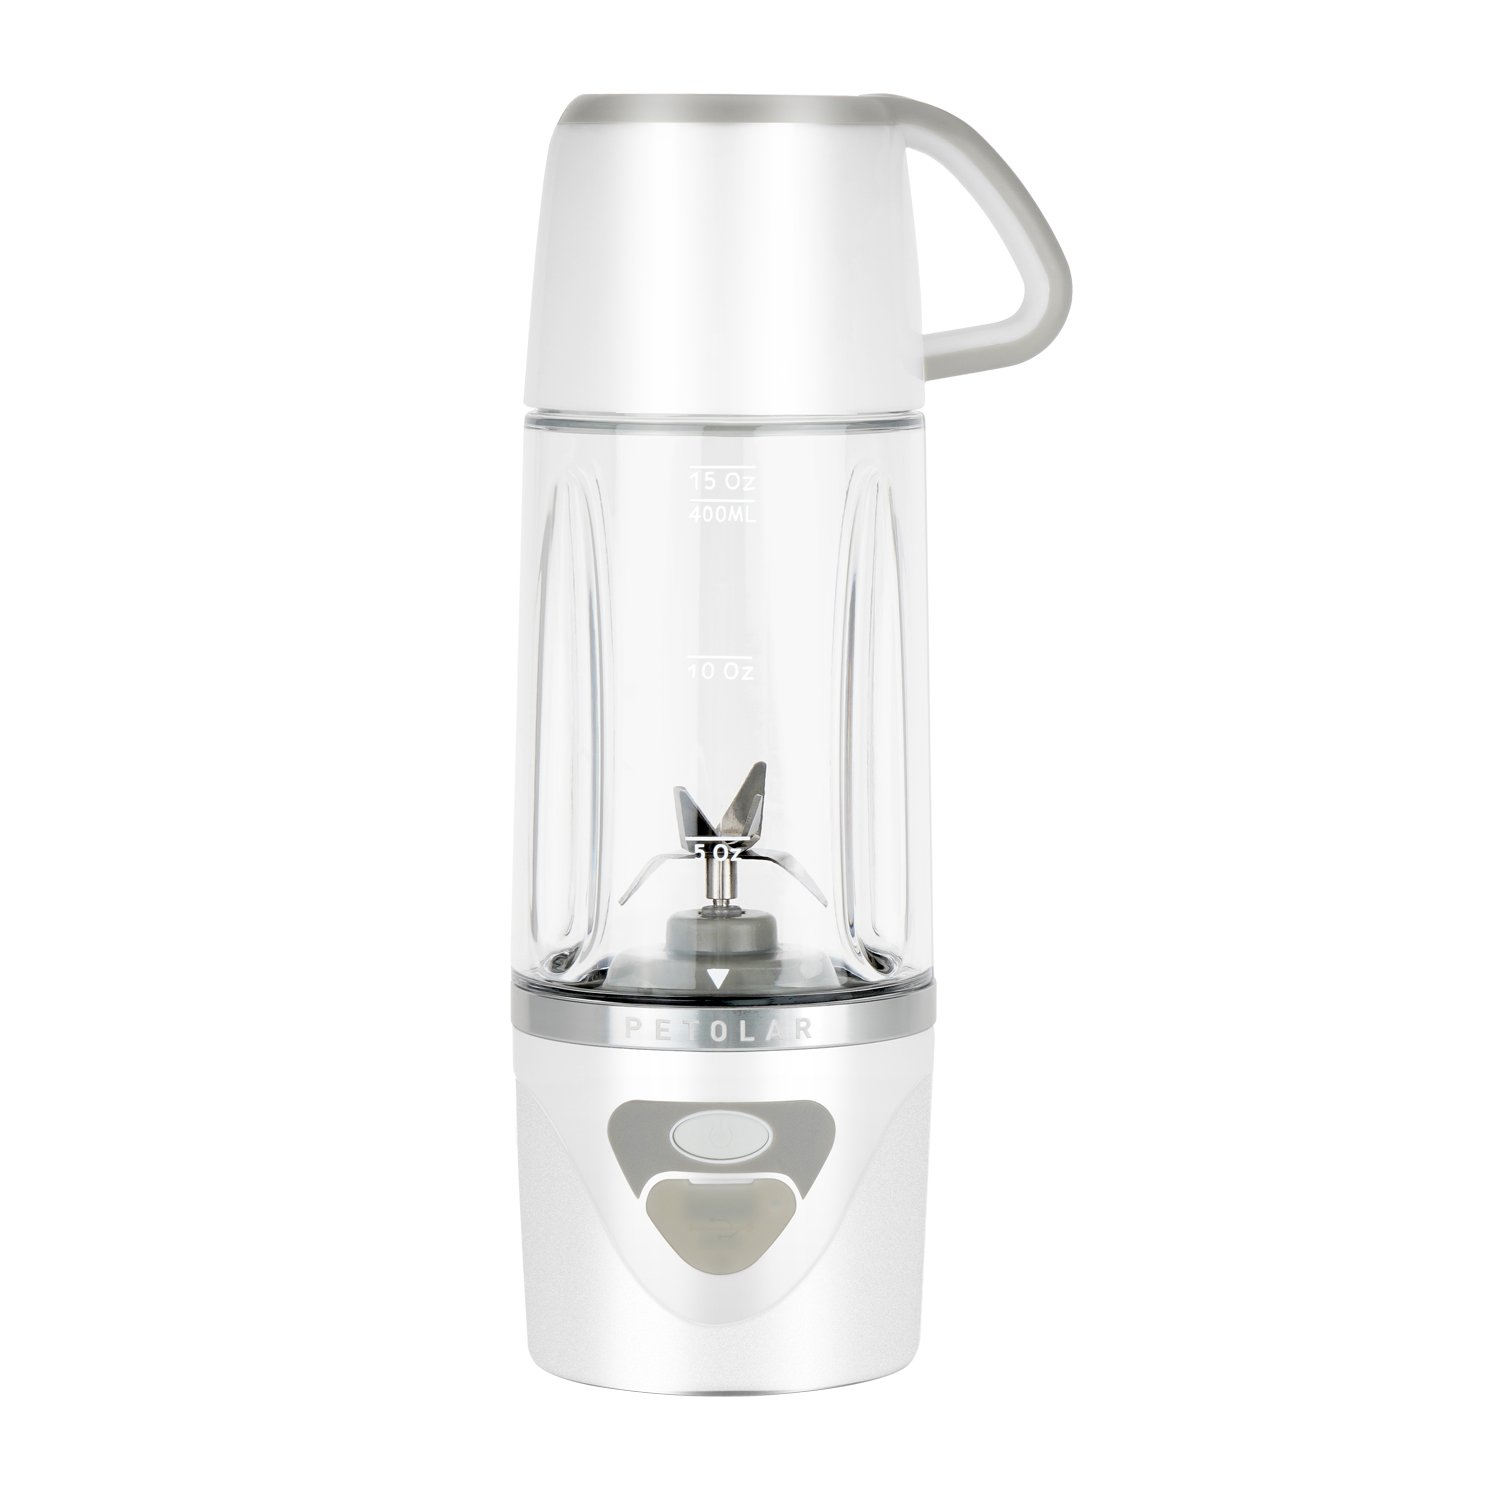 Portable Blender Smoothie Juicer USB Rechargeable Mini Personal Size for Travel (White) PETOLAR